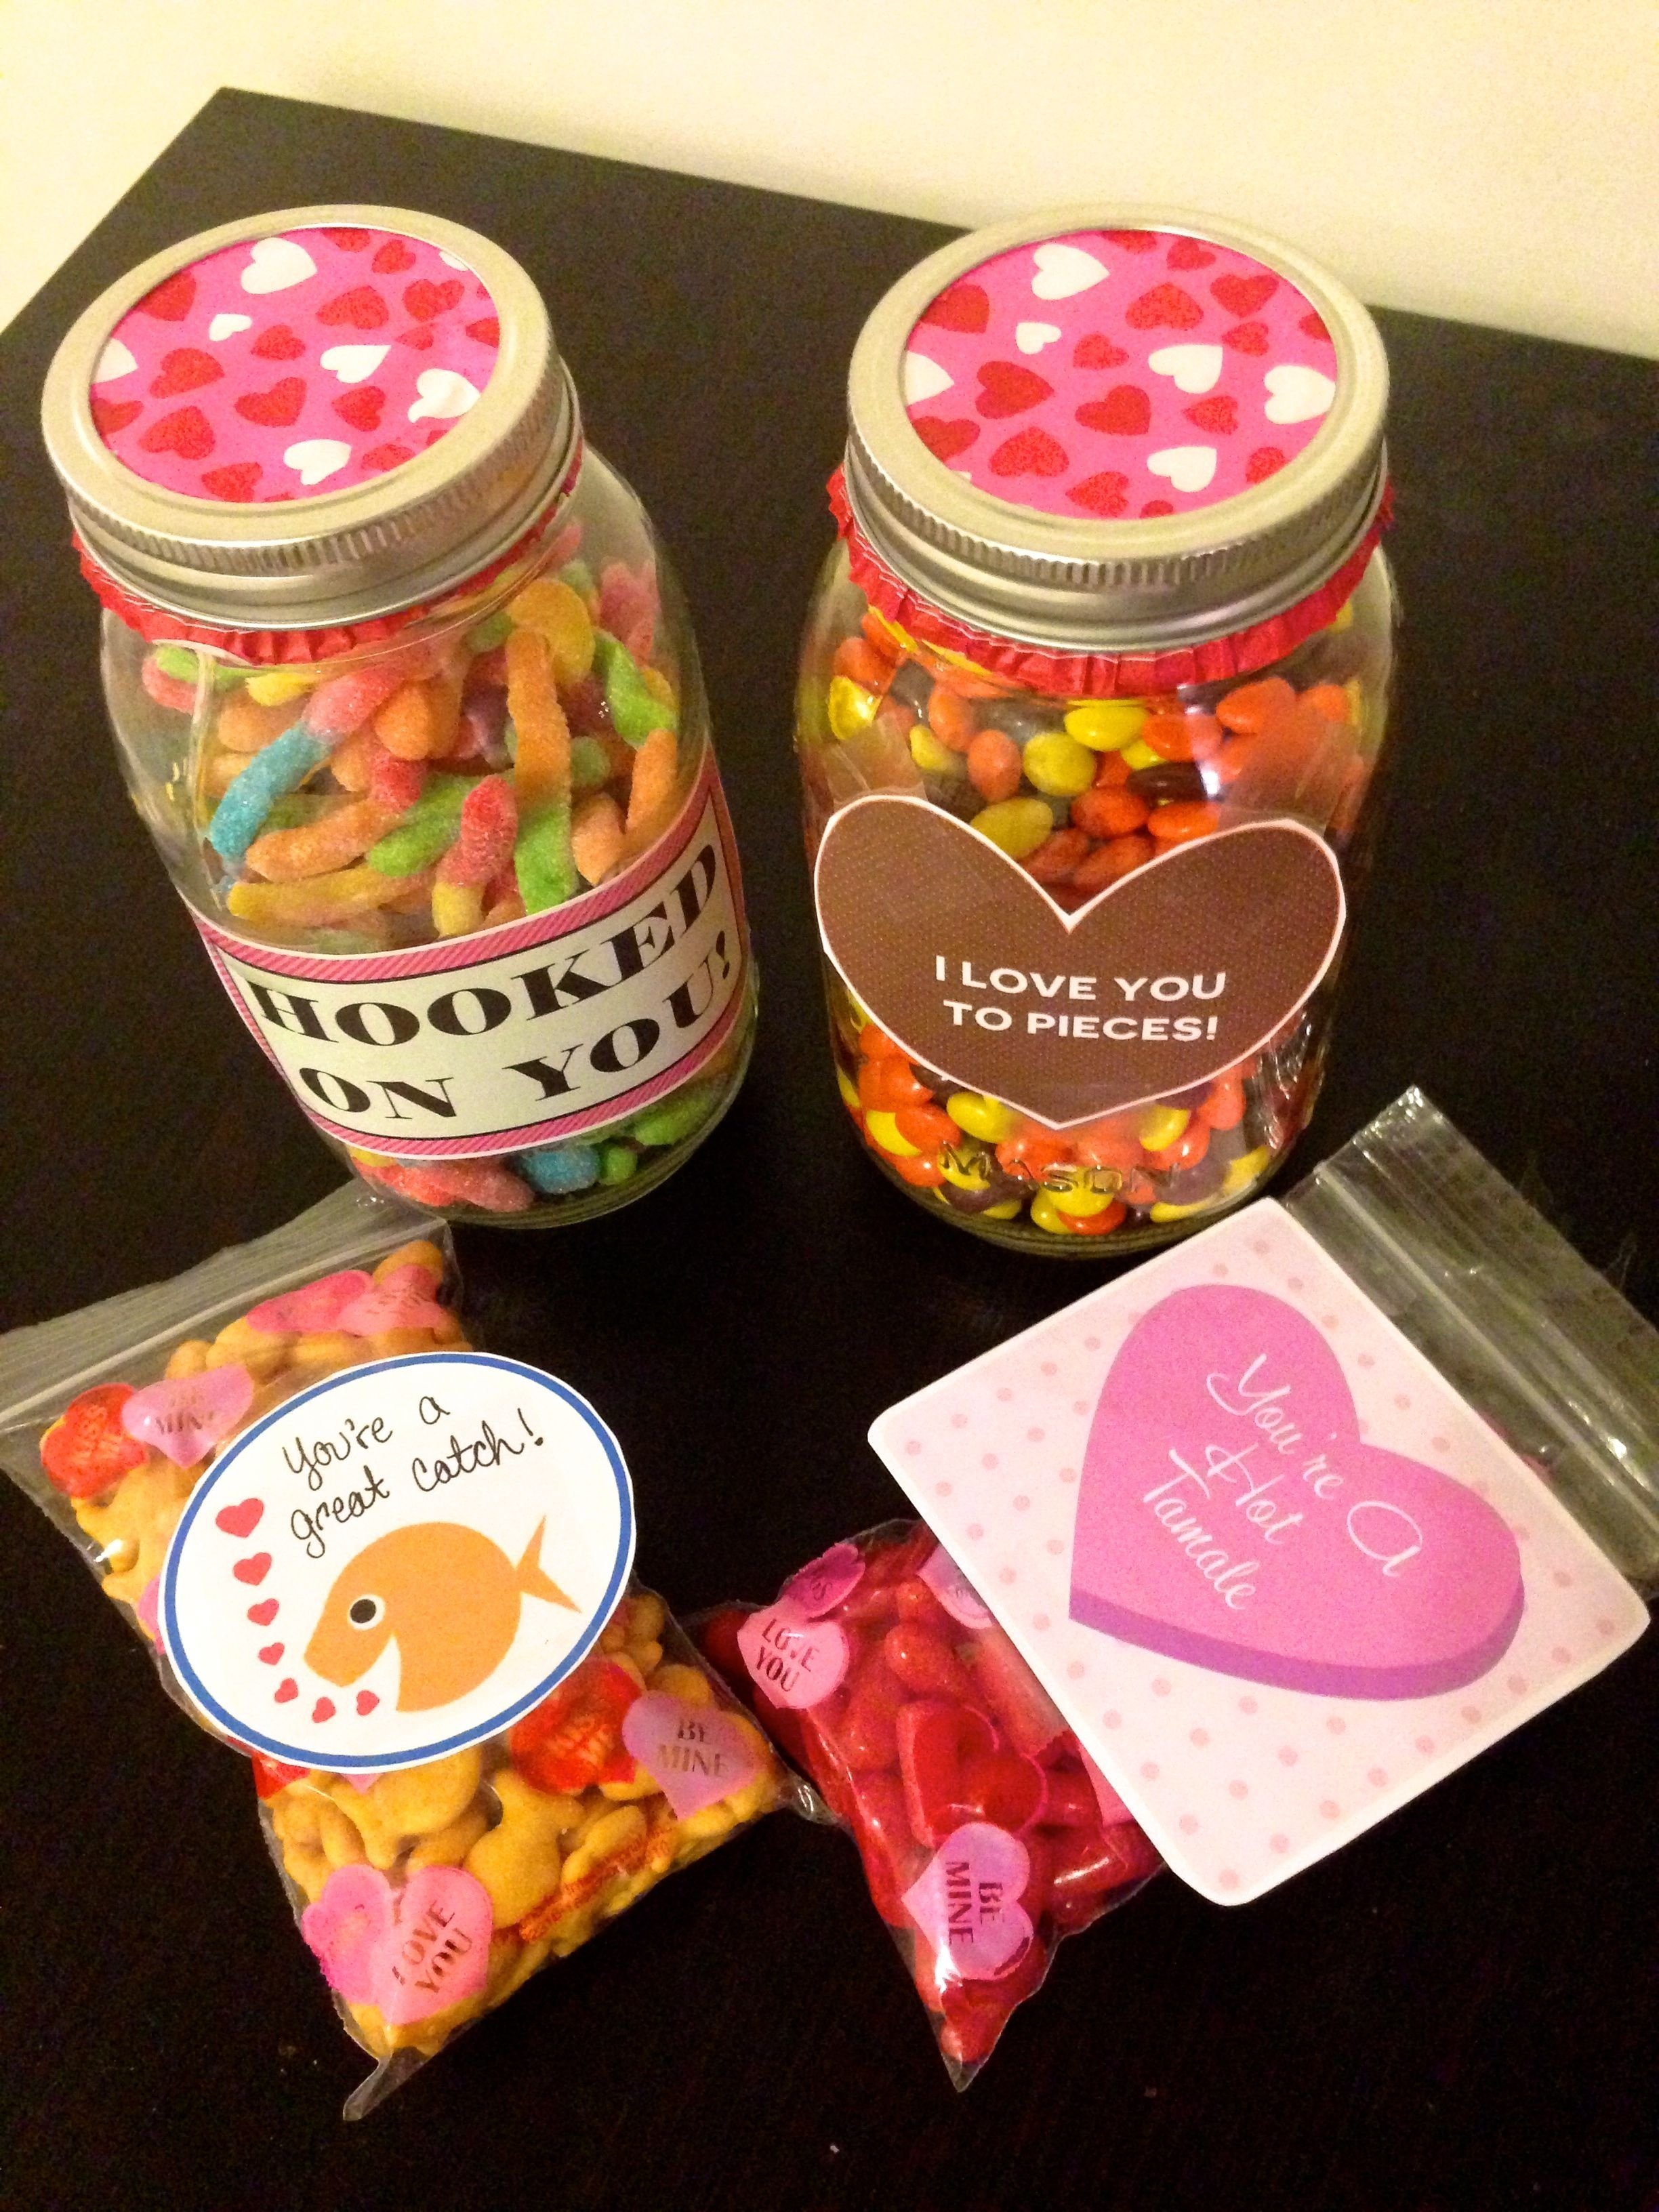 10 Unique Romantic Valentines Day Ideas For Him romantic gift idea for him on a budget budgeting honey and romantic 7 2021